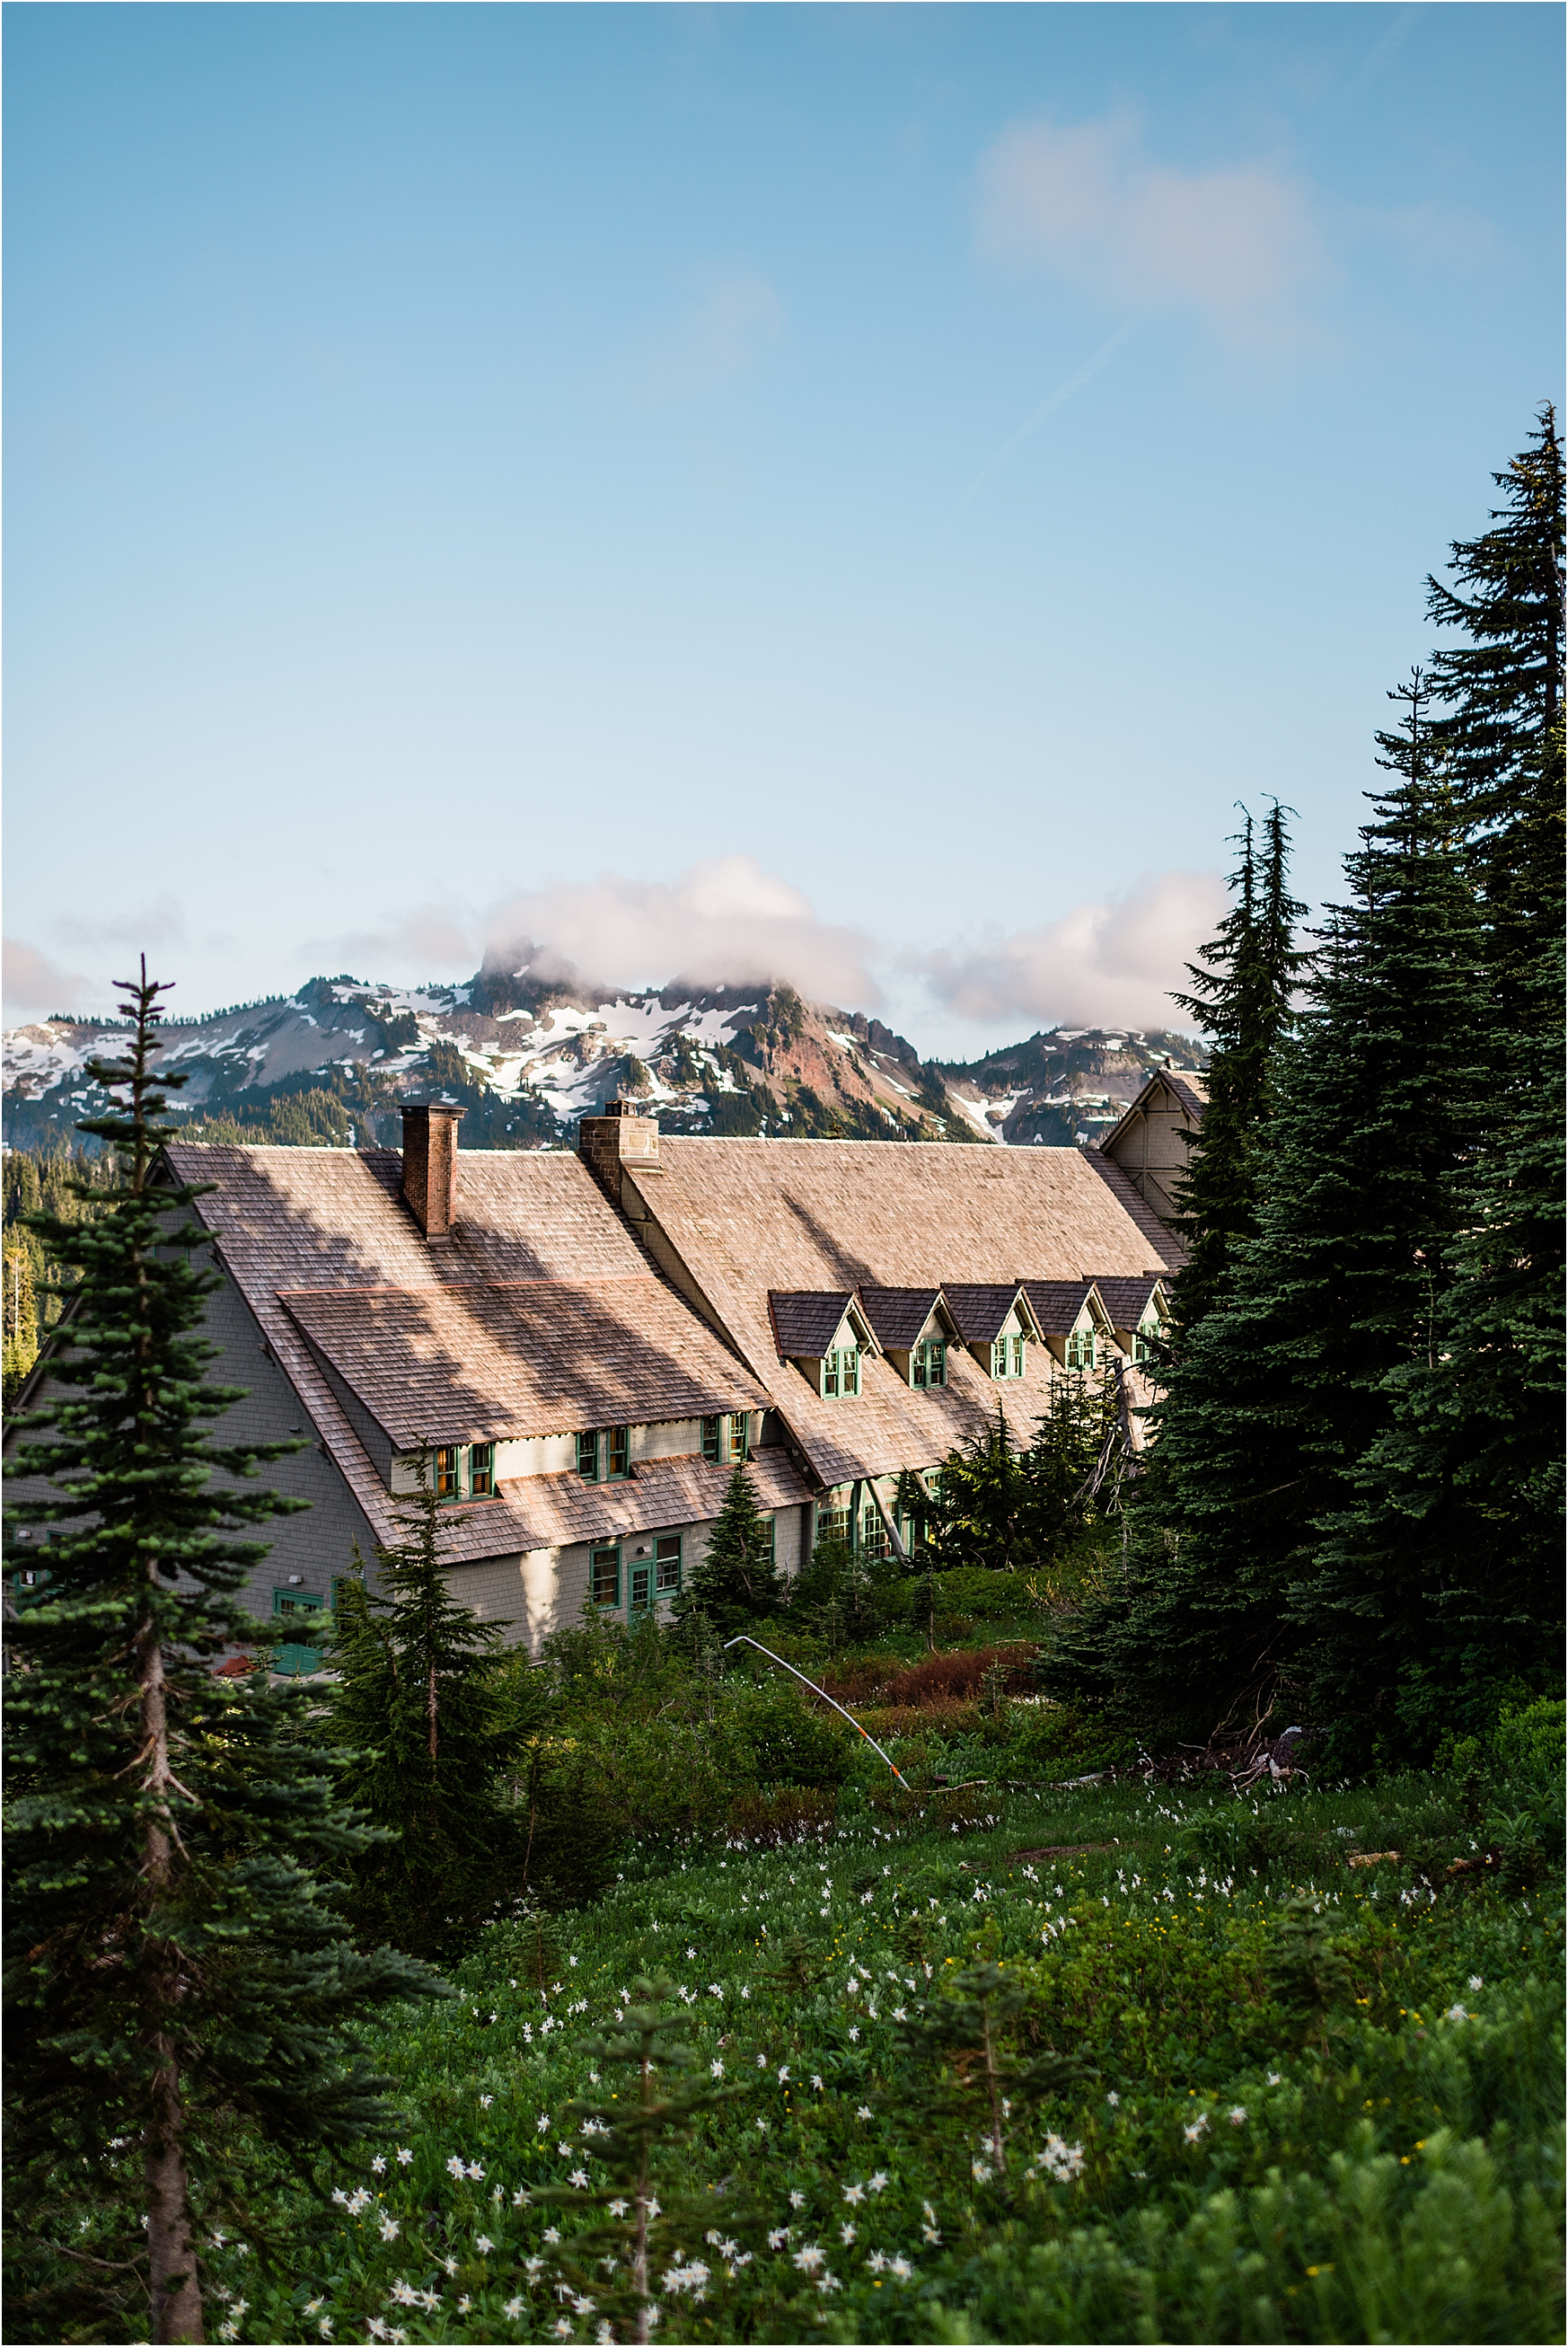 Paradise Hotel in Mount Rainier National Park. Image by Forthright Photo.